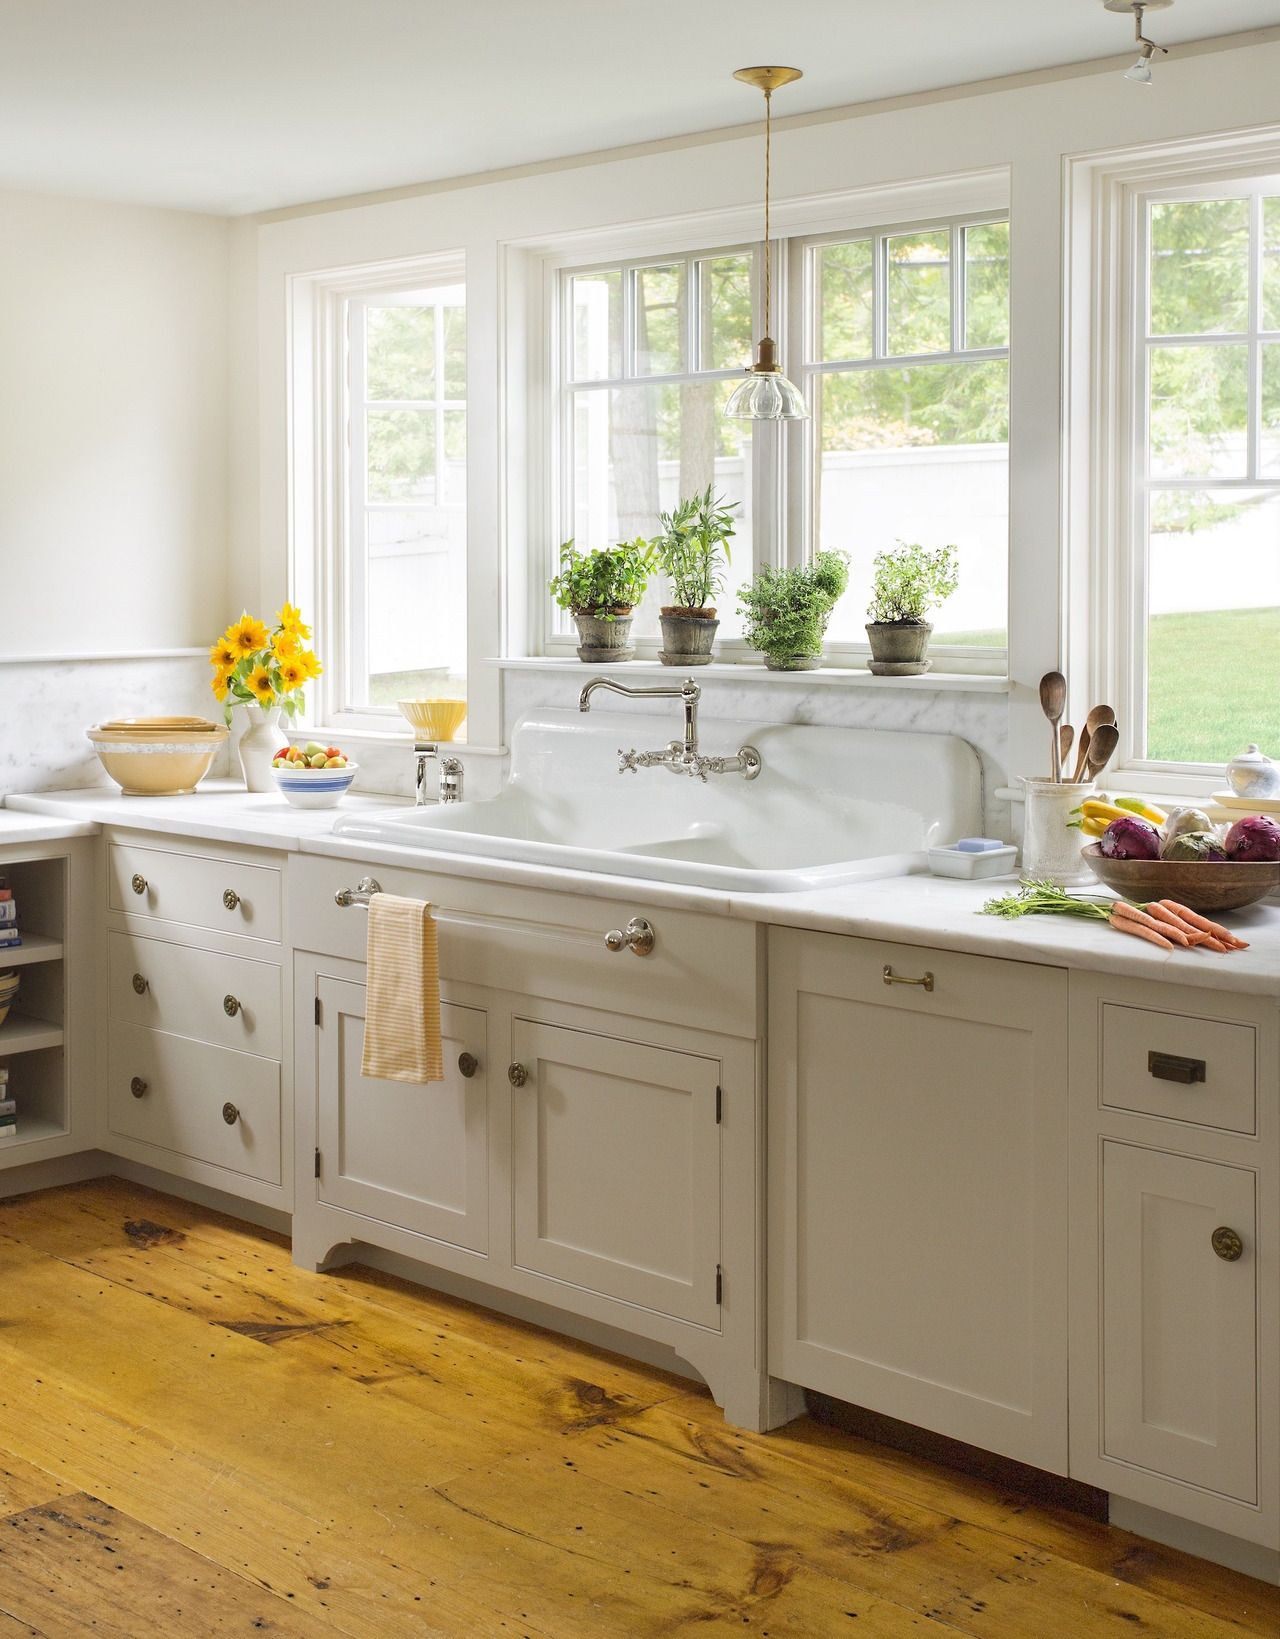 This Old House Photograph For This Old House By Eric Roth Country Kitchen Home Kitchens Kitchen Design